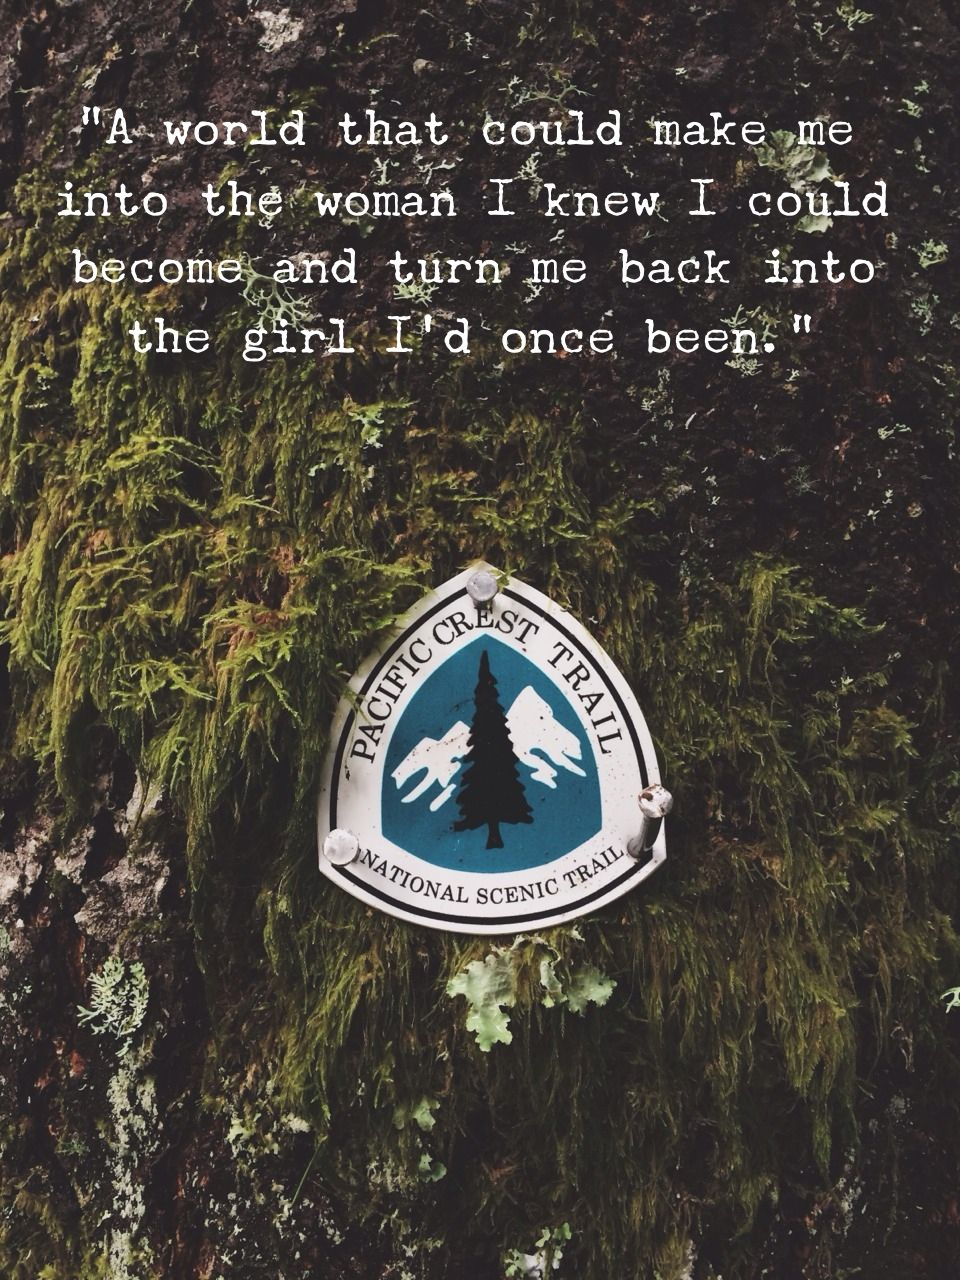 Quotes From Wild Cheryl Strayed Facebook